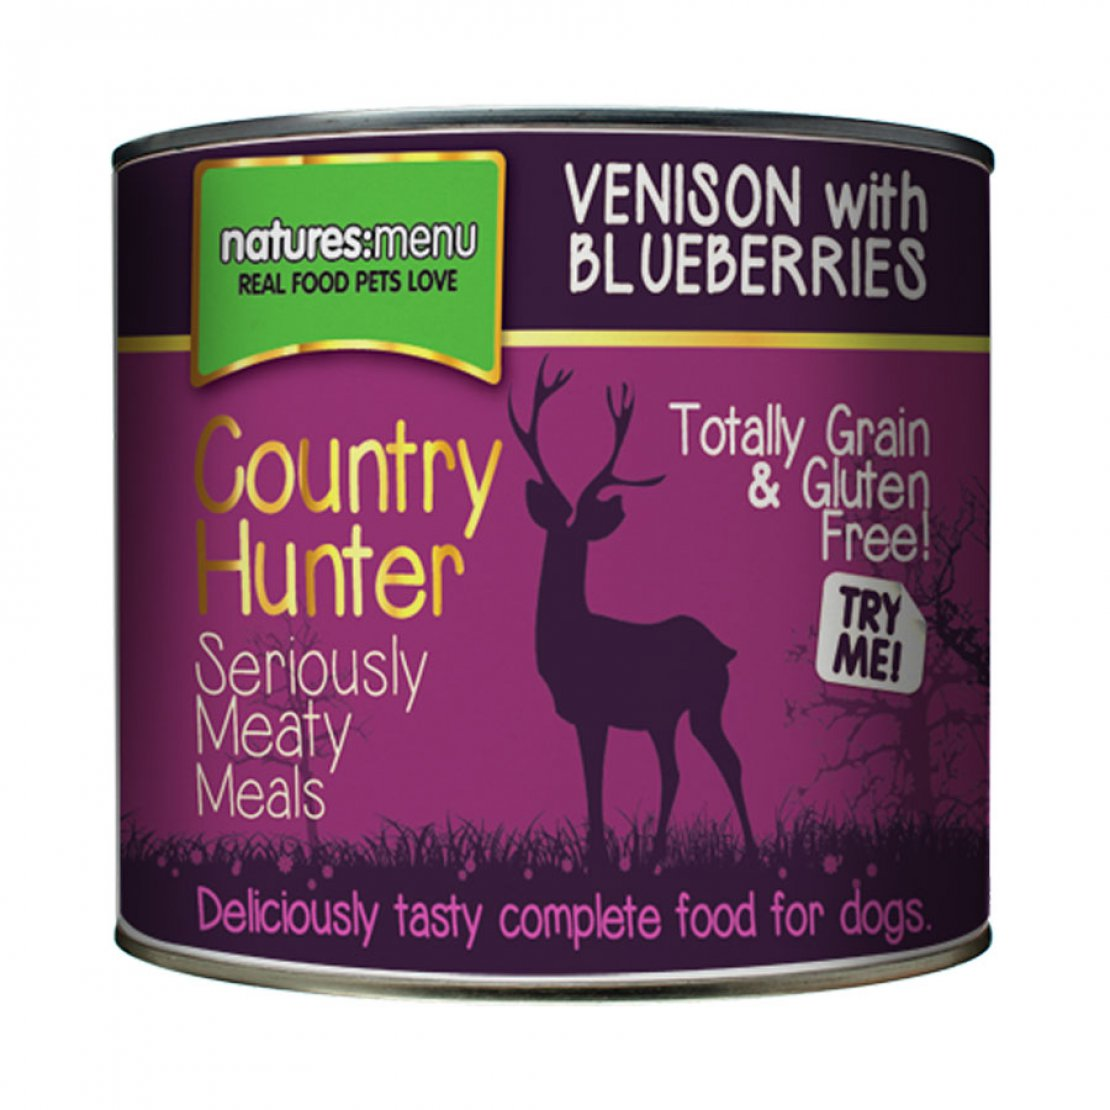 ONLY AVAILABLE FOR LOCAL DELIVERY. Country Hunter Dog Food Can. Venison. 6Pk.